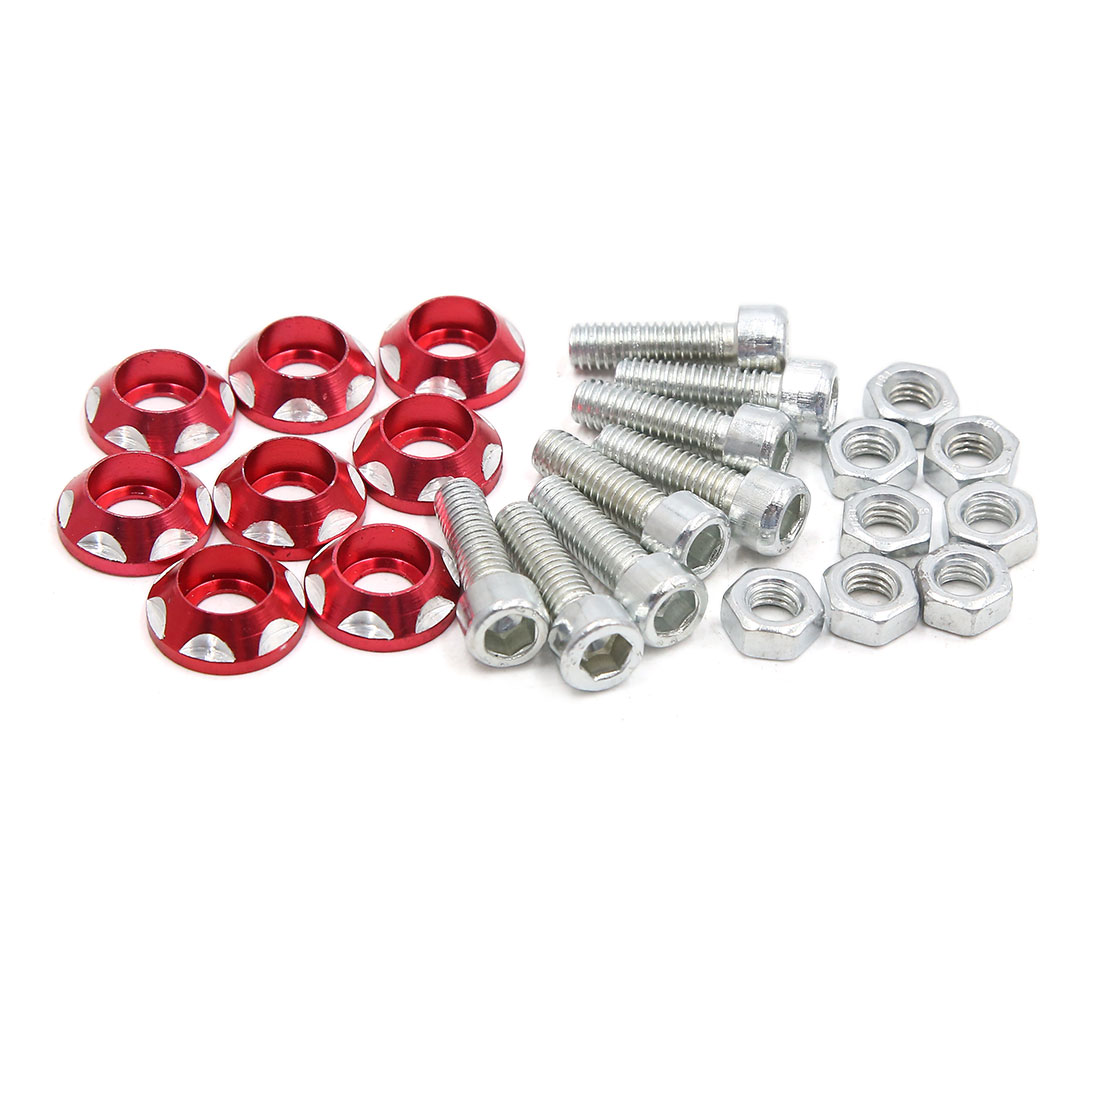 8pcs Red Carved Design Hex Socket License Plate Bolts Screws for Motorcycle